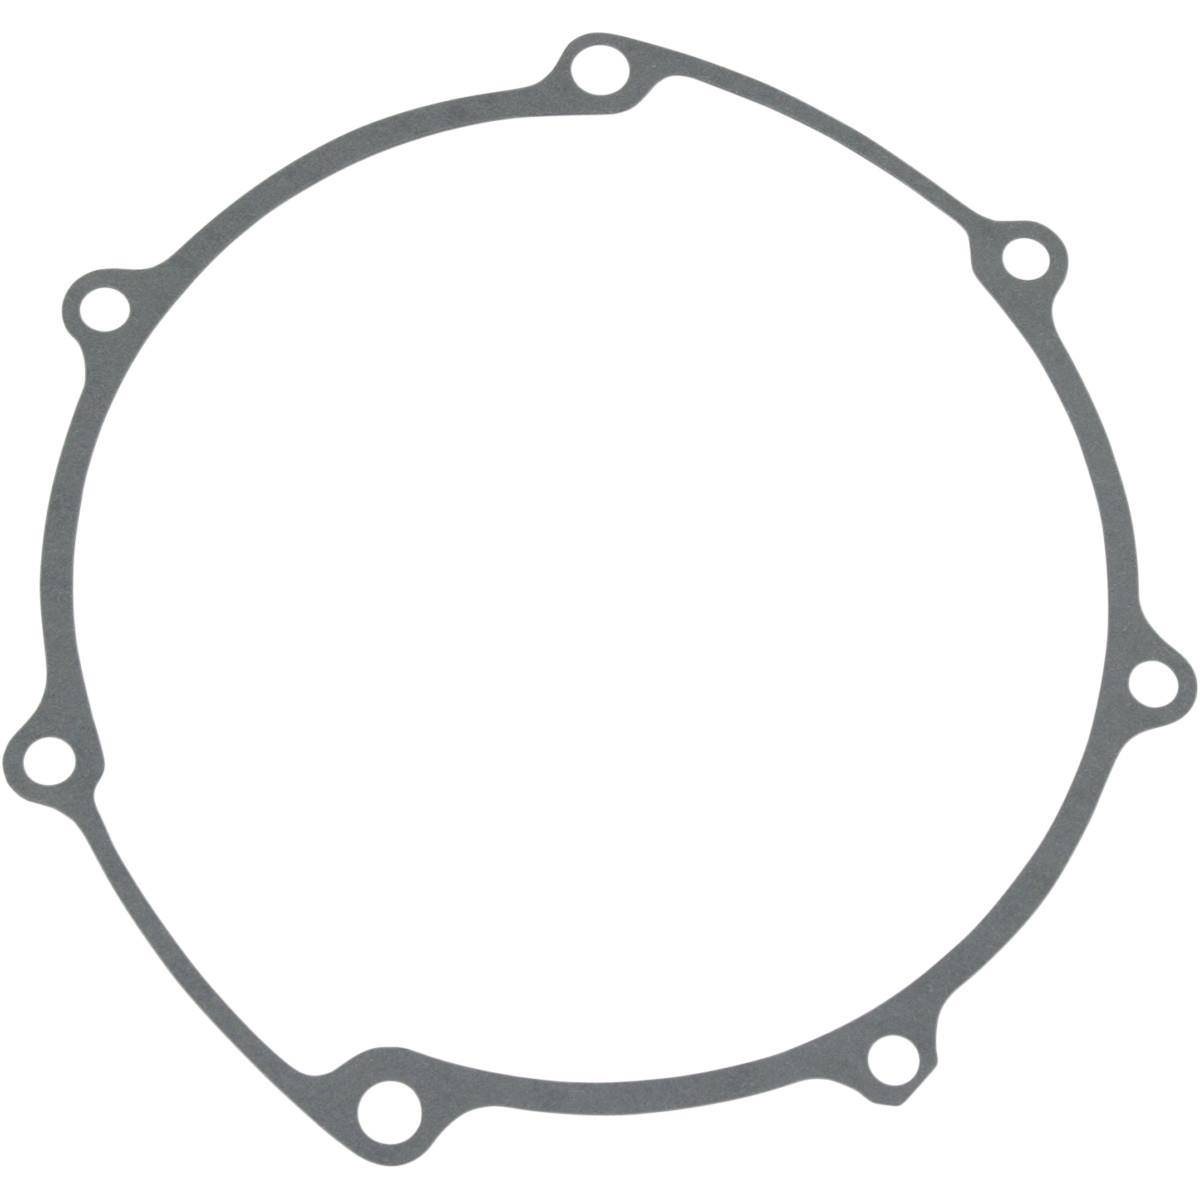 Clutch cover gasket for sale in paducah ky chase motorsports inc 270 442 4273